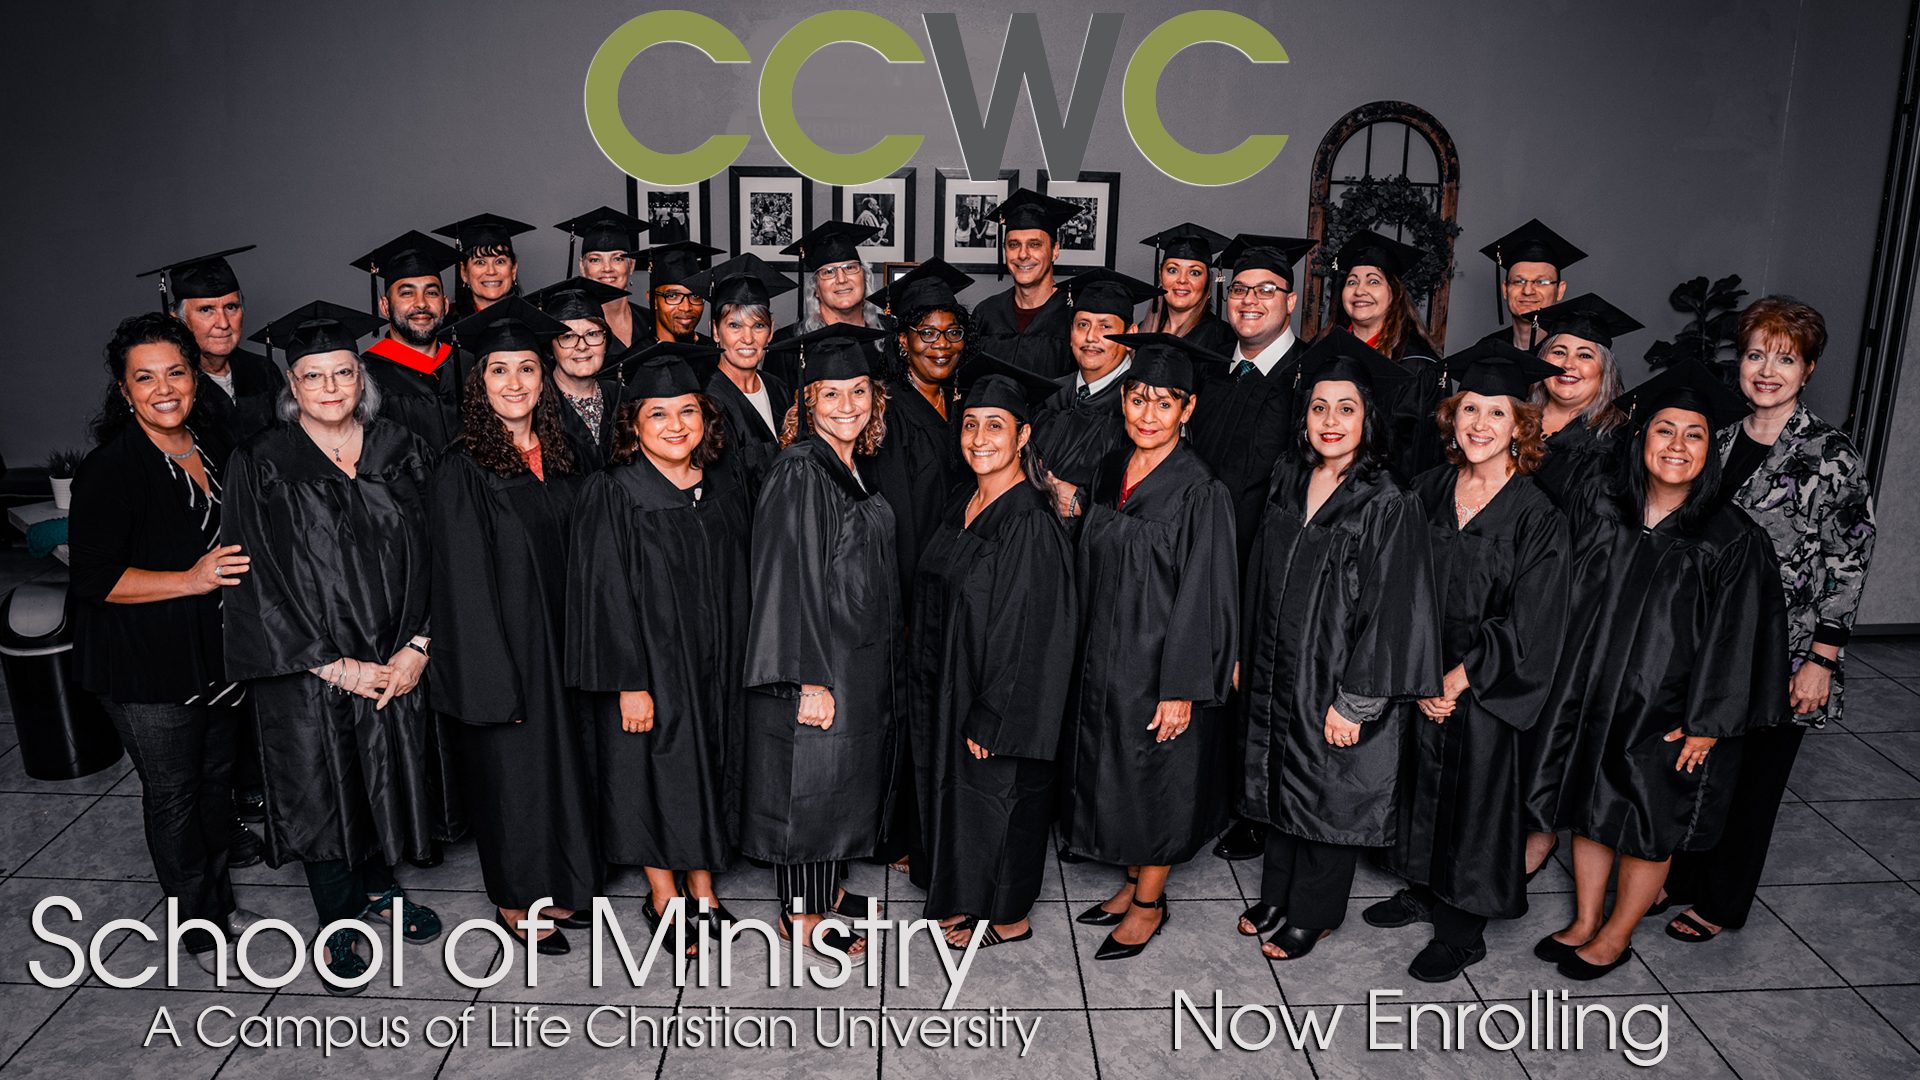 CCWC School Of Ministry Now Enrolling